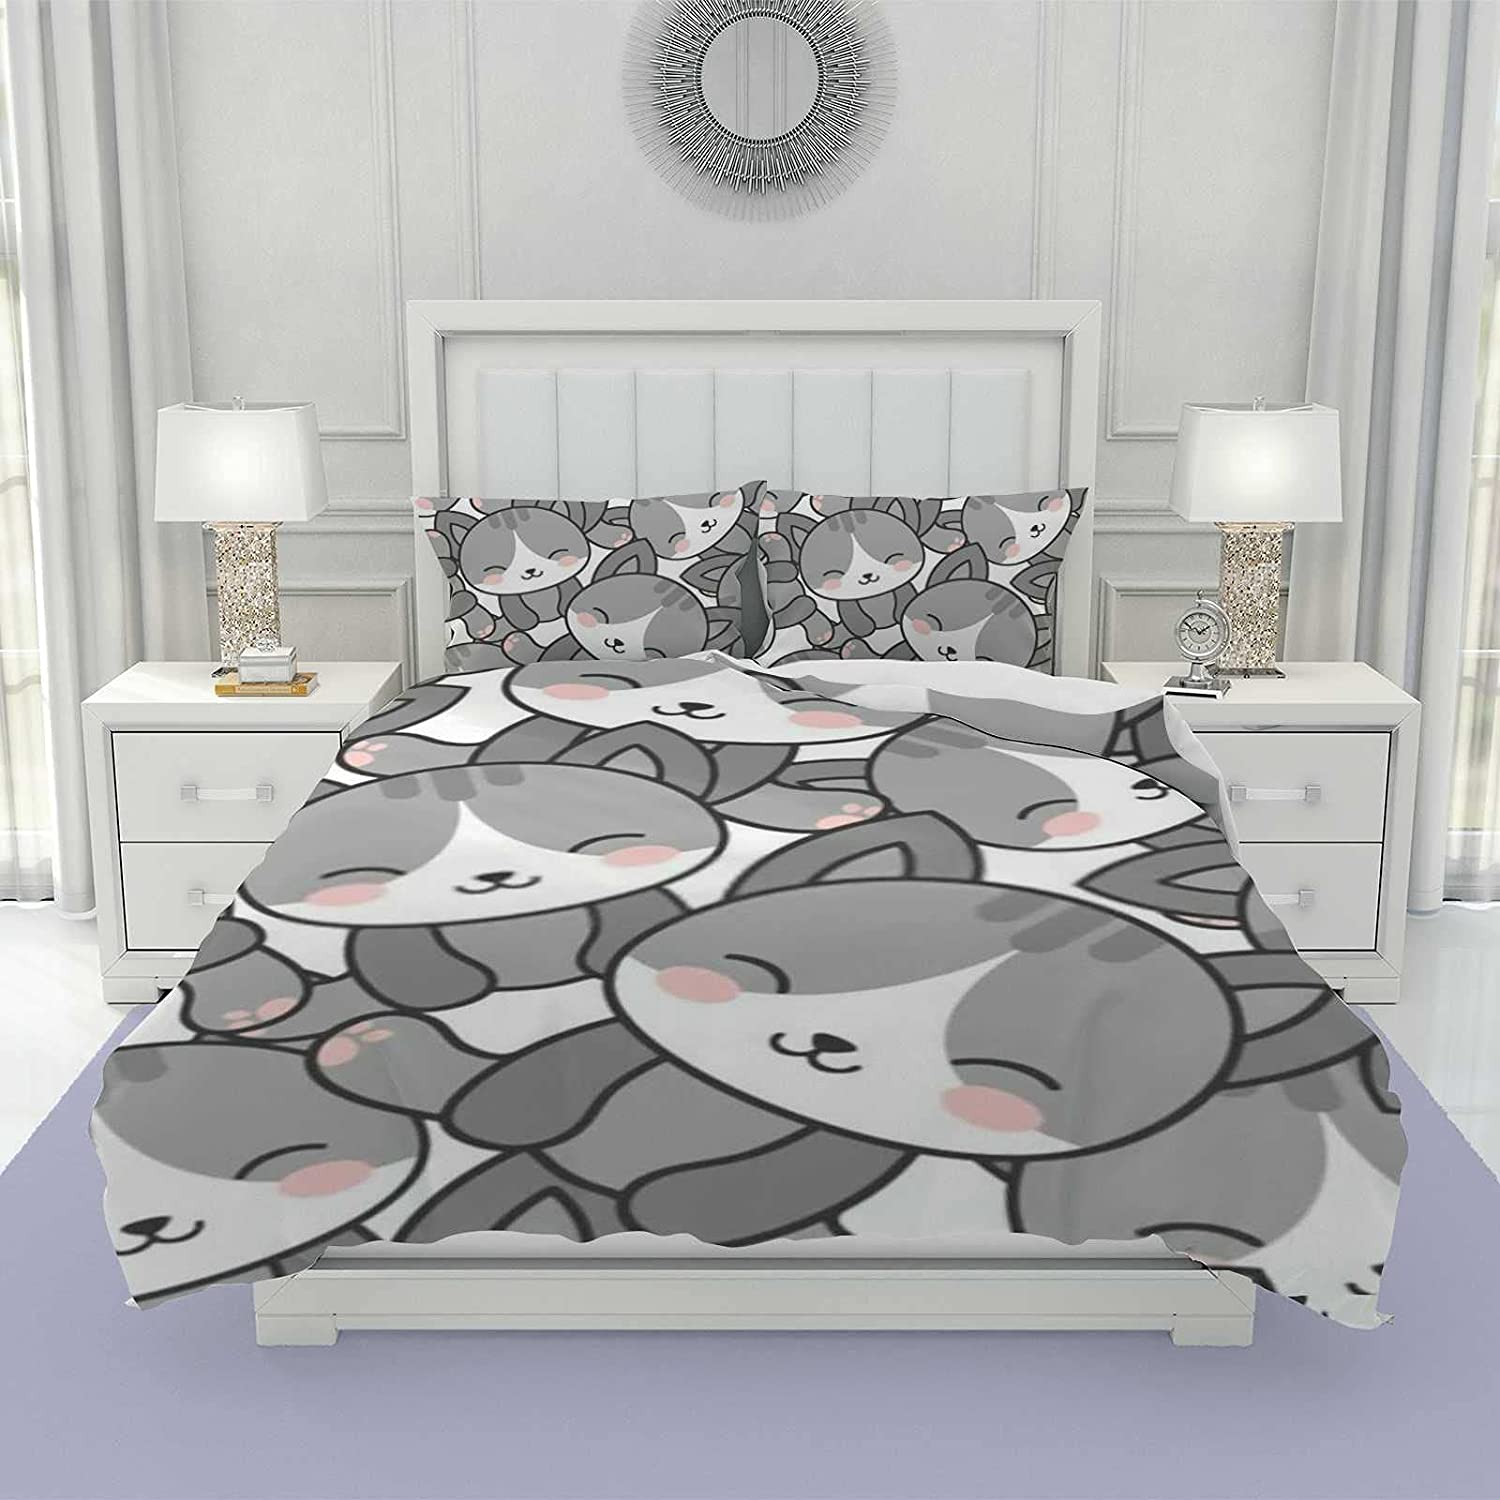 3Pcs Duvet Cover Set - 1 Ranking TOP1 2 Quilt and Sham Tampa Mall Comforter Pillow